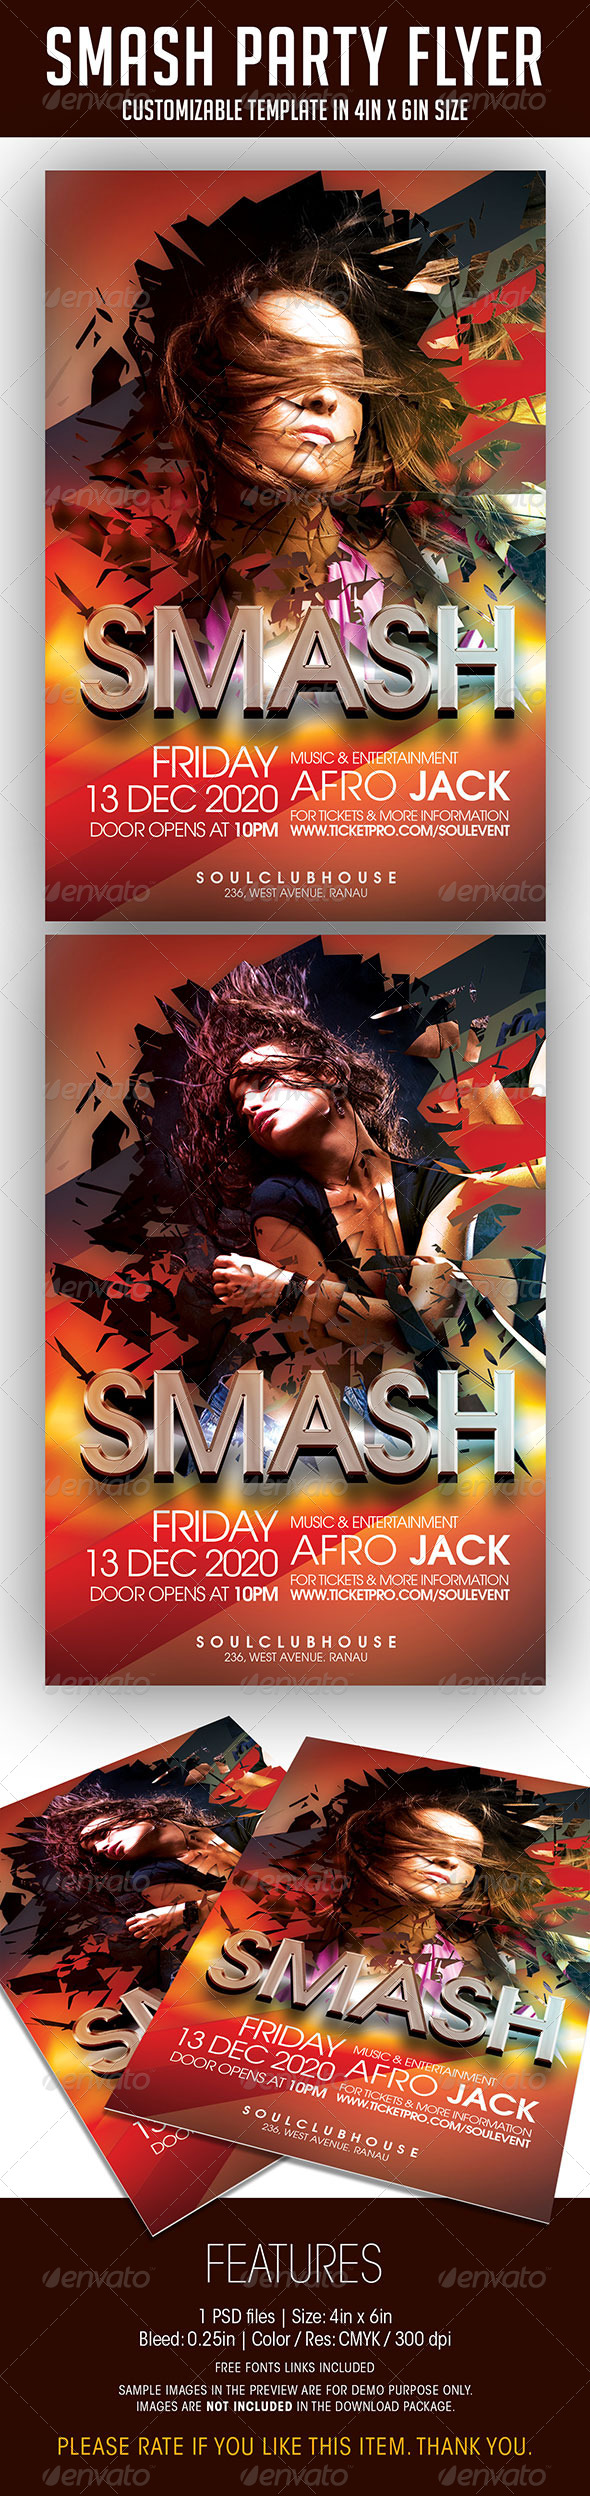 Smash Party Flyer - Clubs & Parties Events